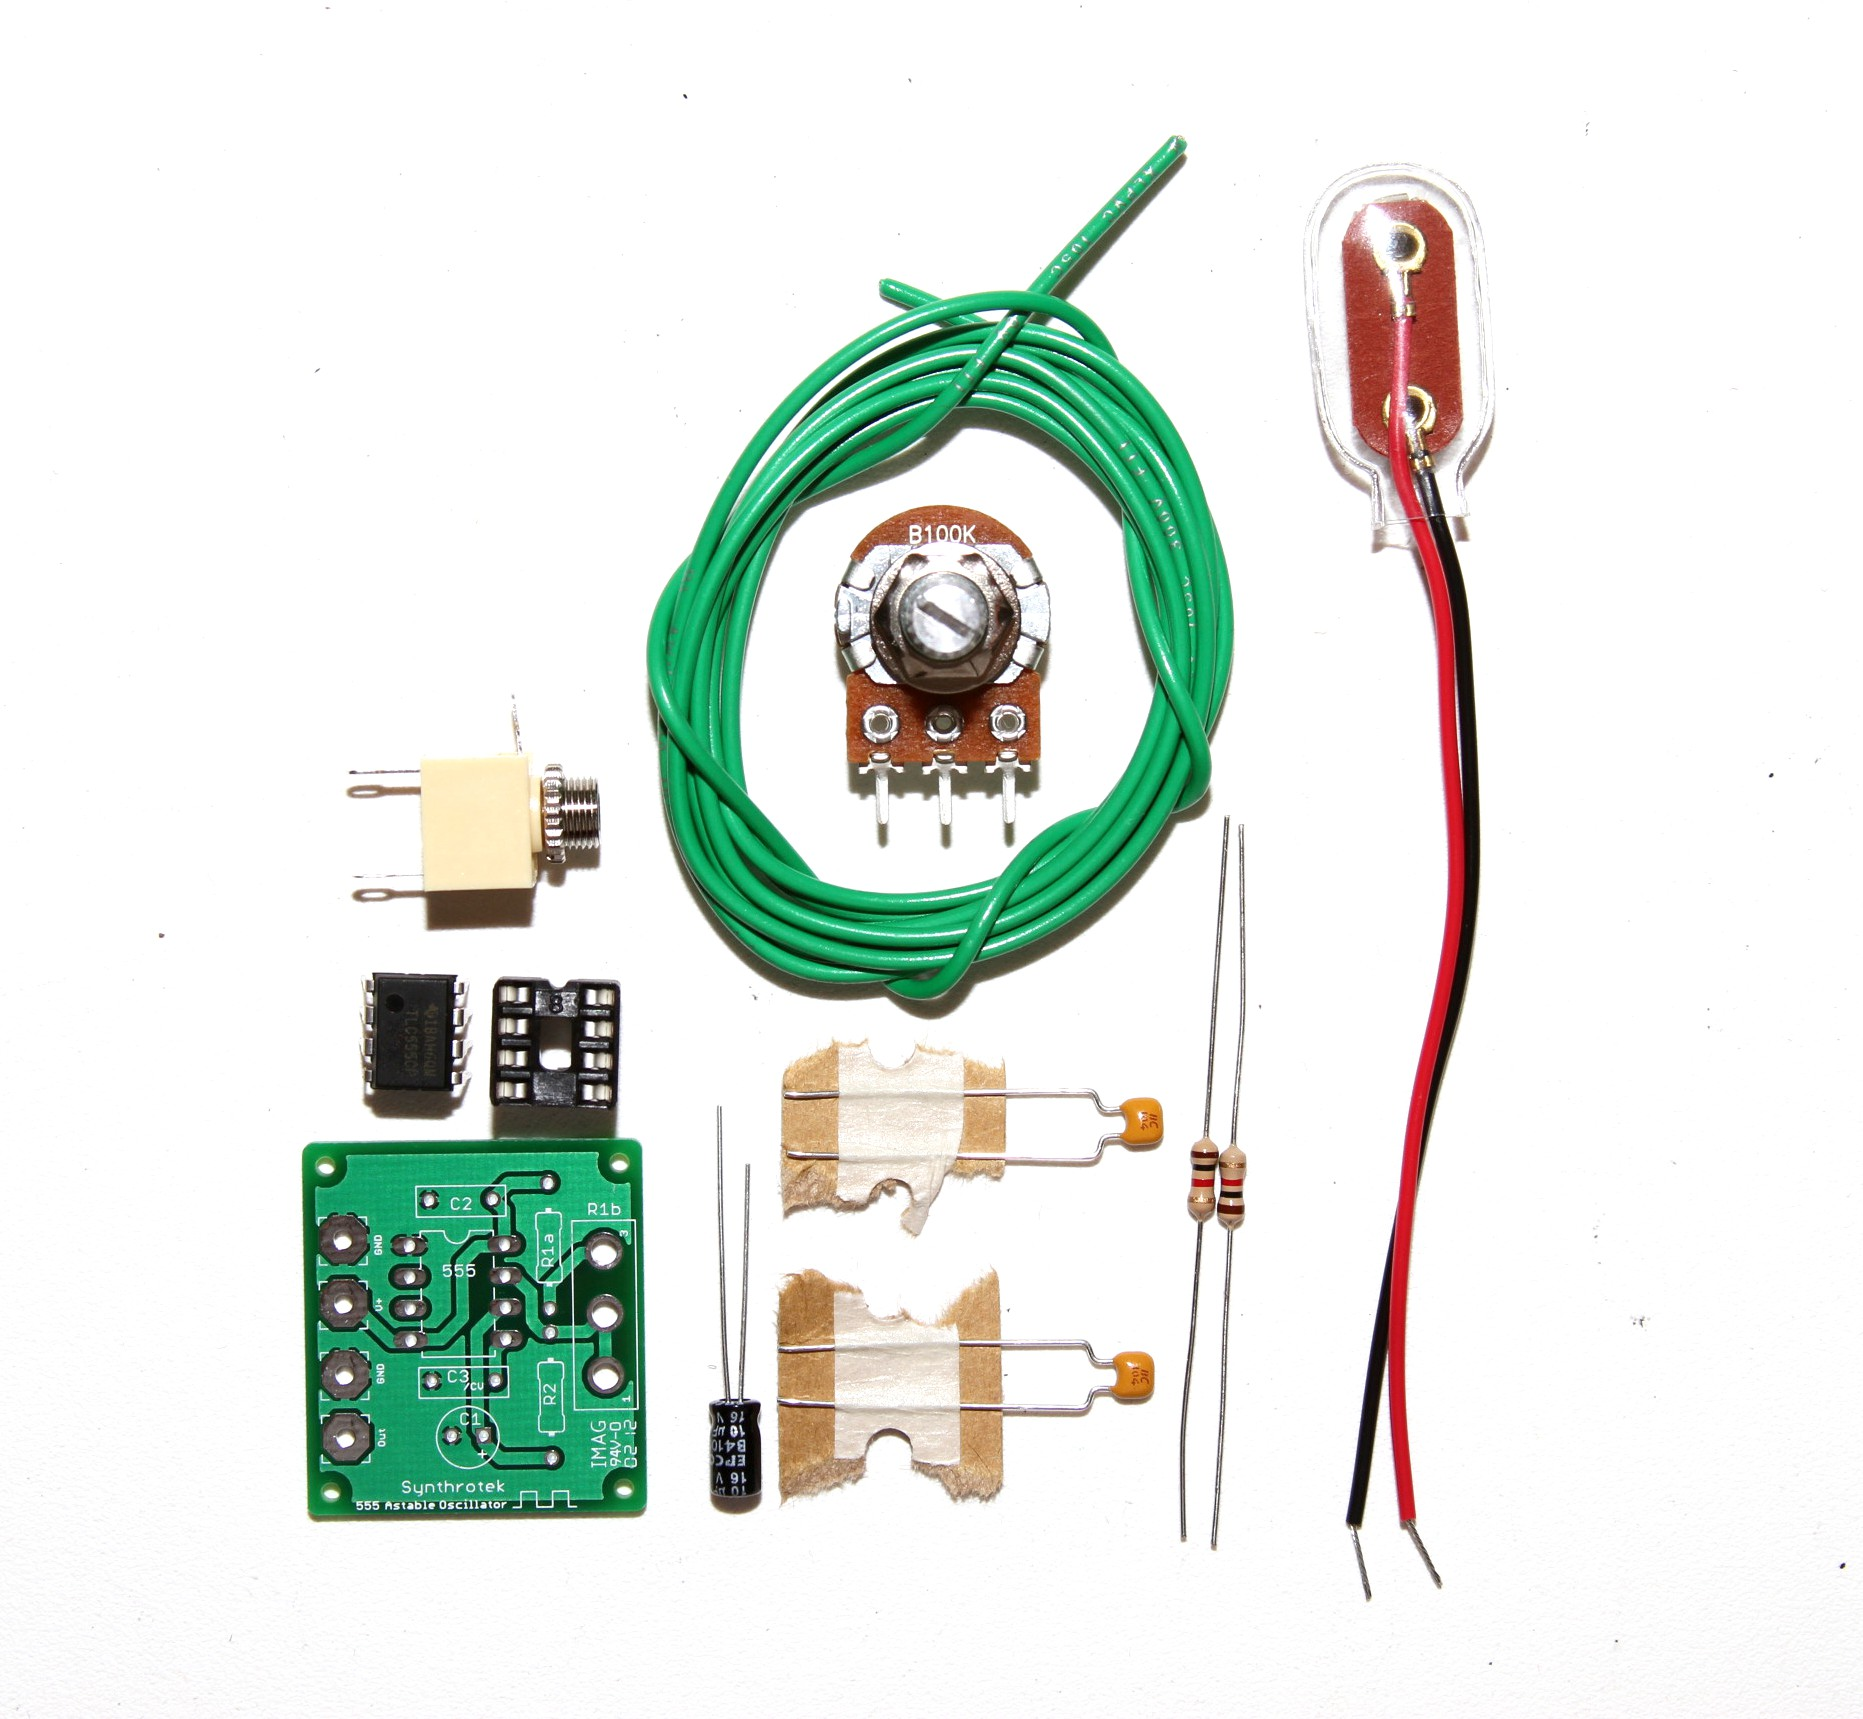 hight resolution of 555 555 timer 555 oscillator 555 timer oscillator lfo diy 555 timer kit synthrotek